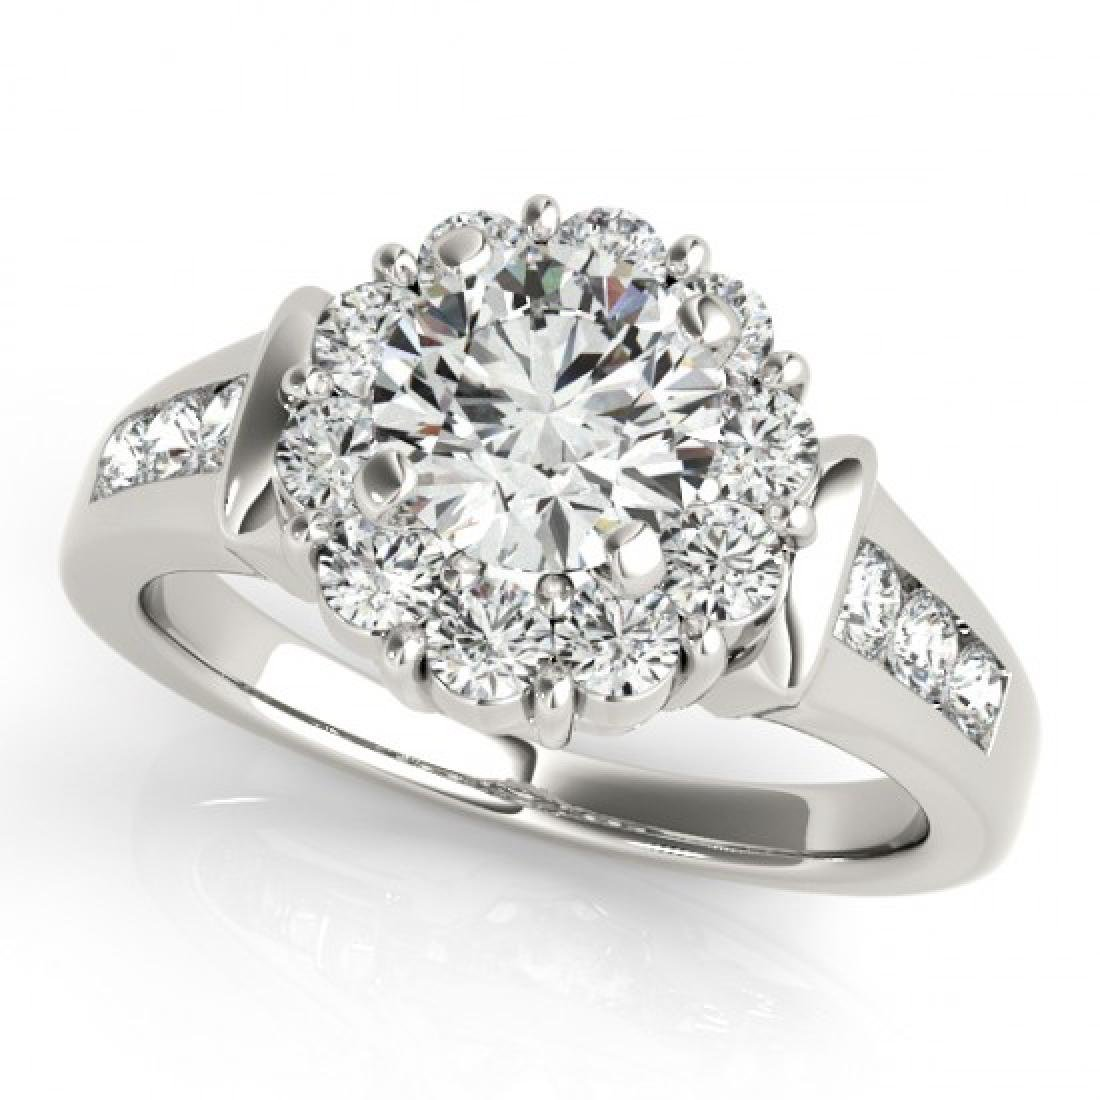 1.9 CTW Certified VS/SI Diamond Solitaire Halo Ring 14K